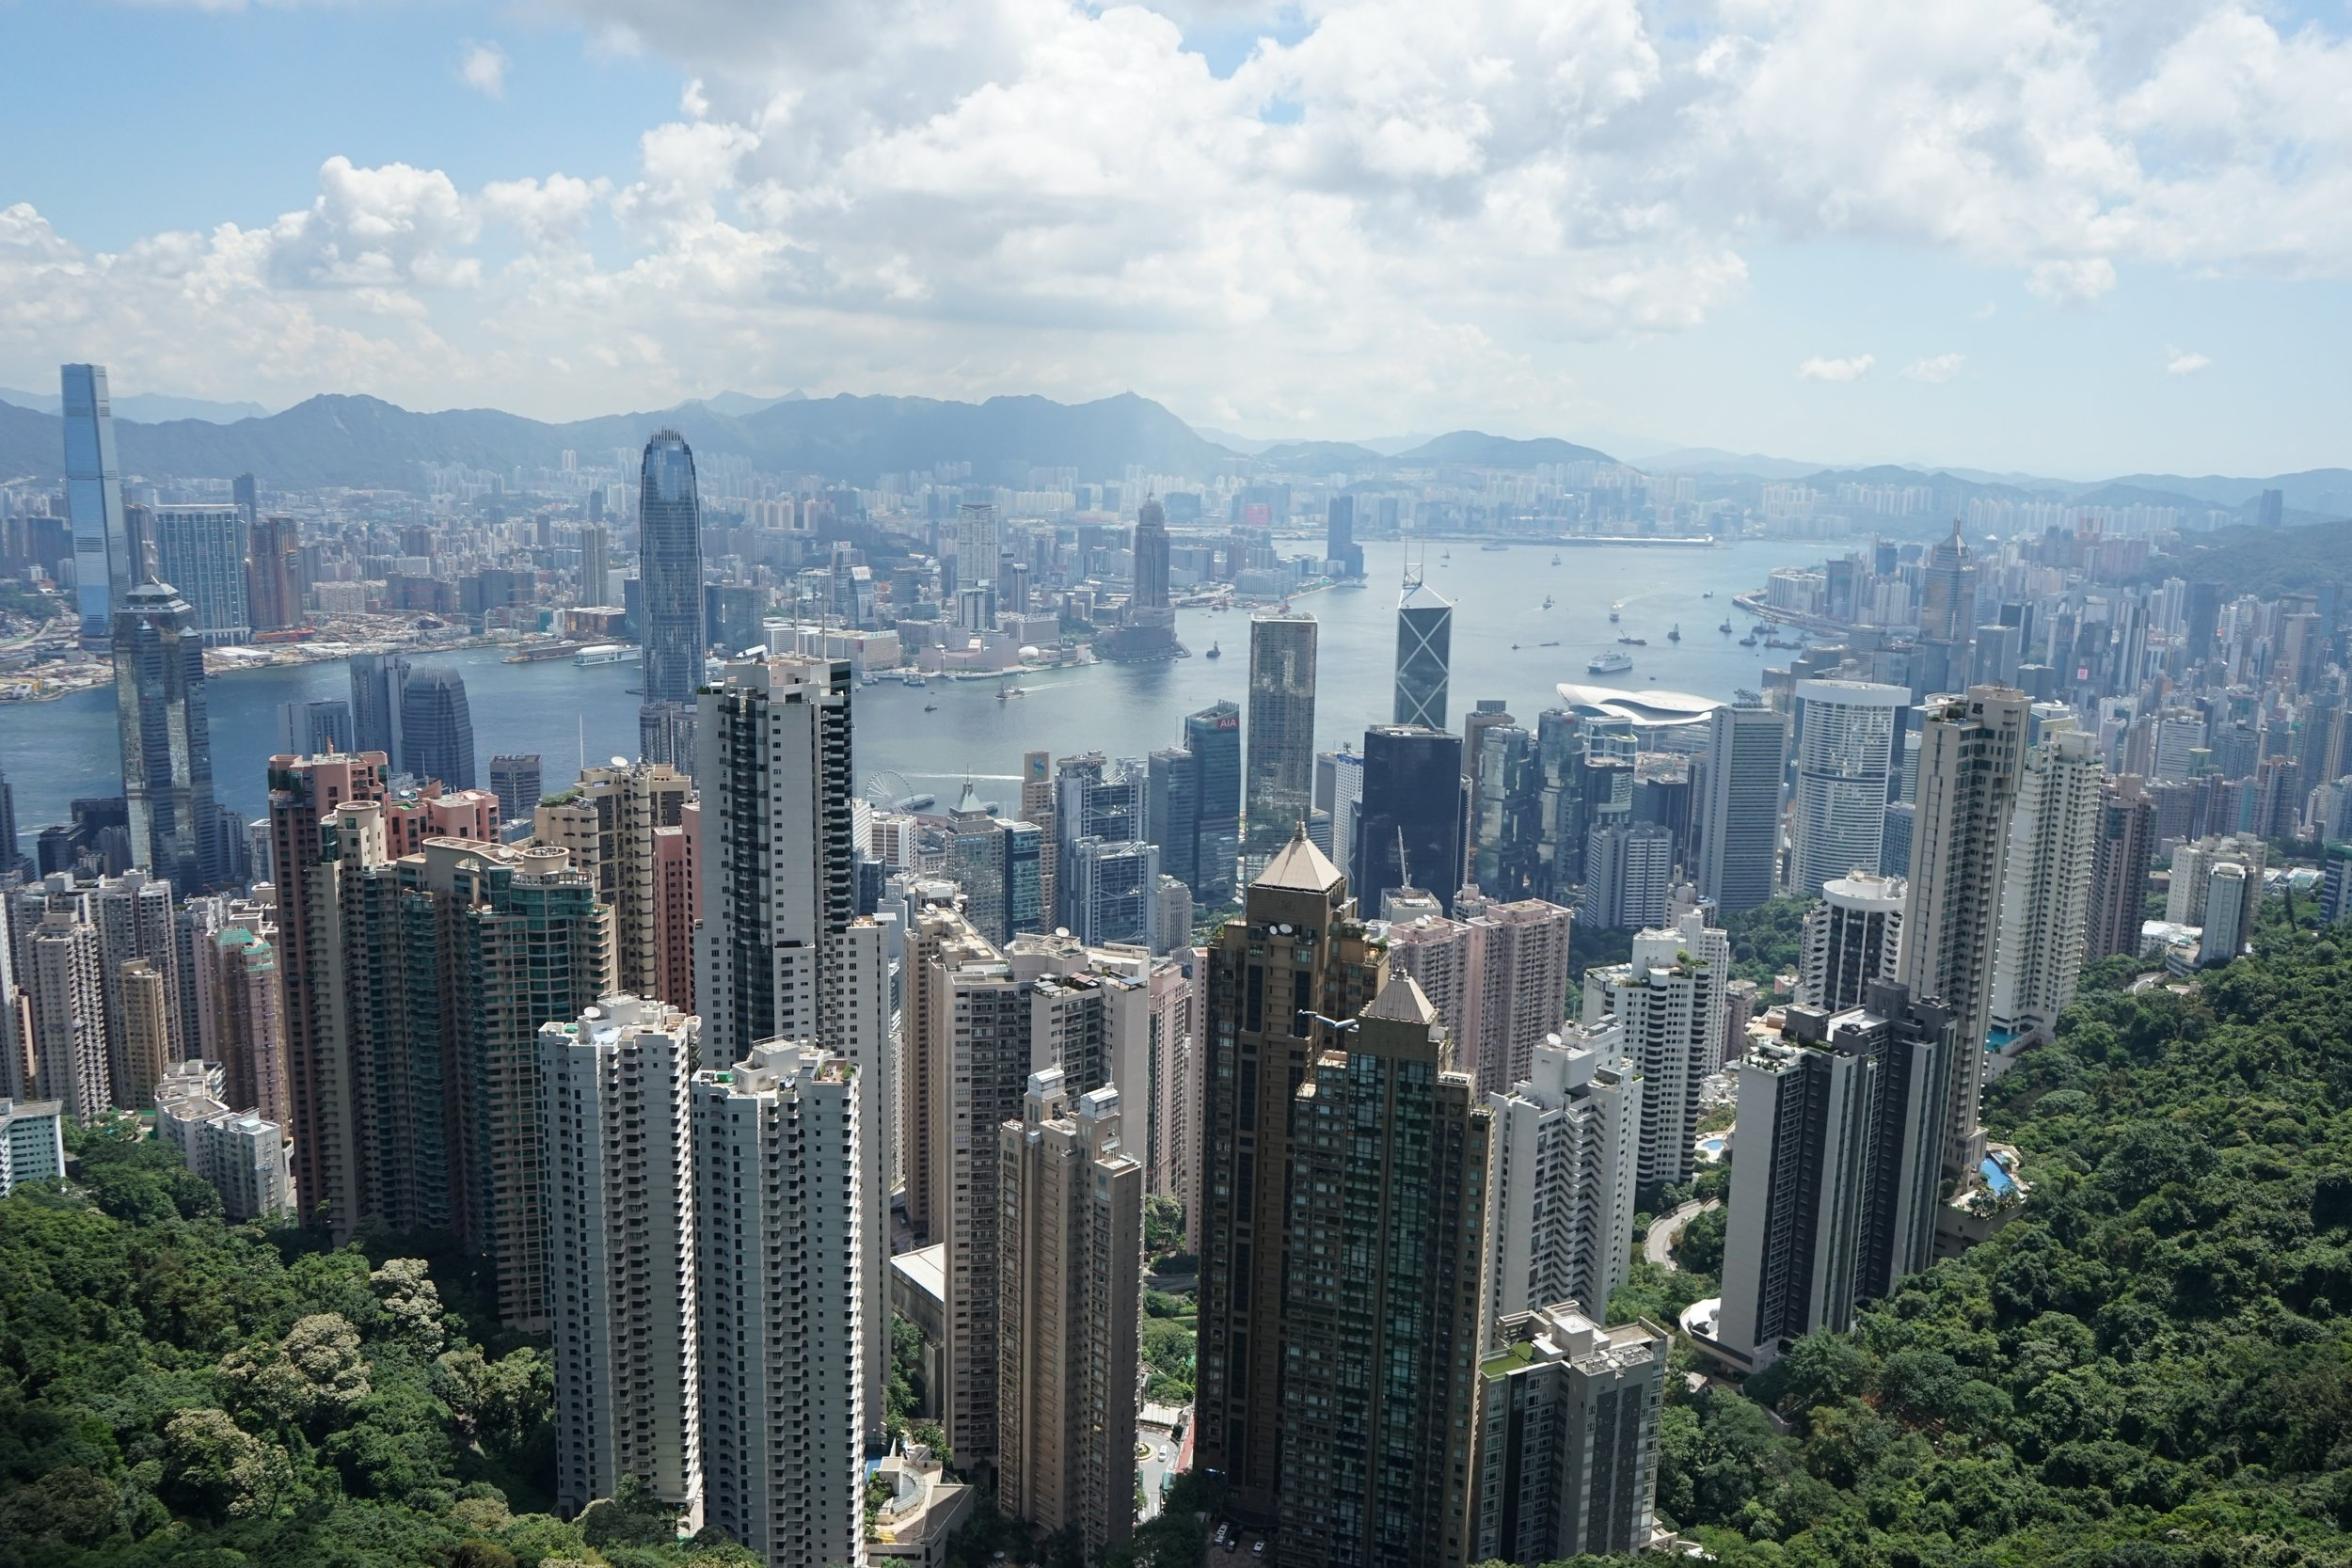 Hong Kong is often used by Western companies as a launchpad into China